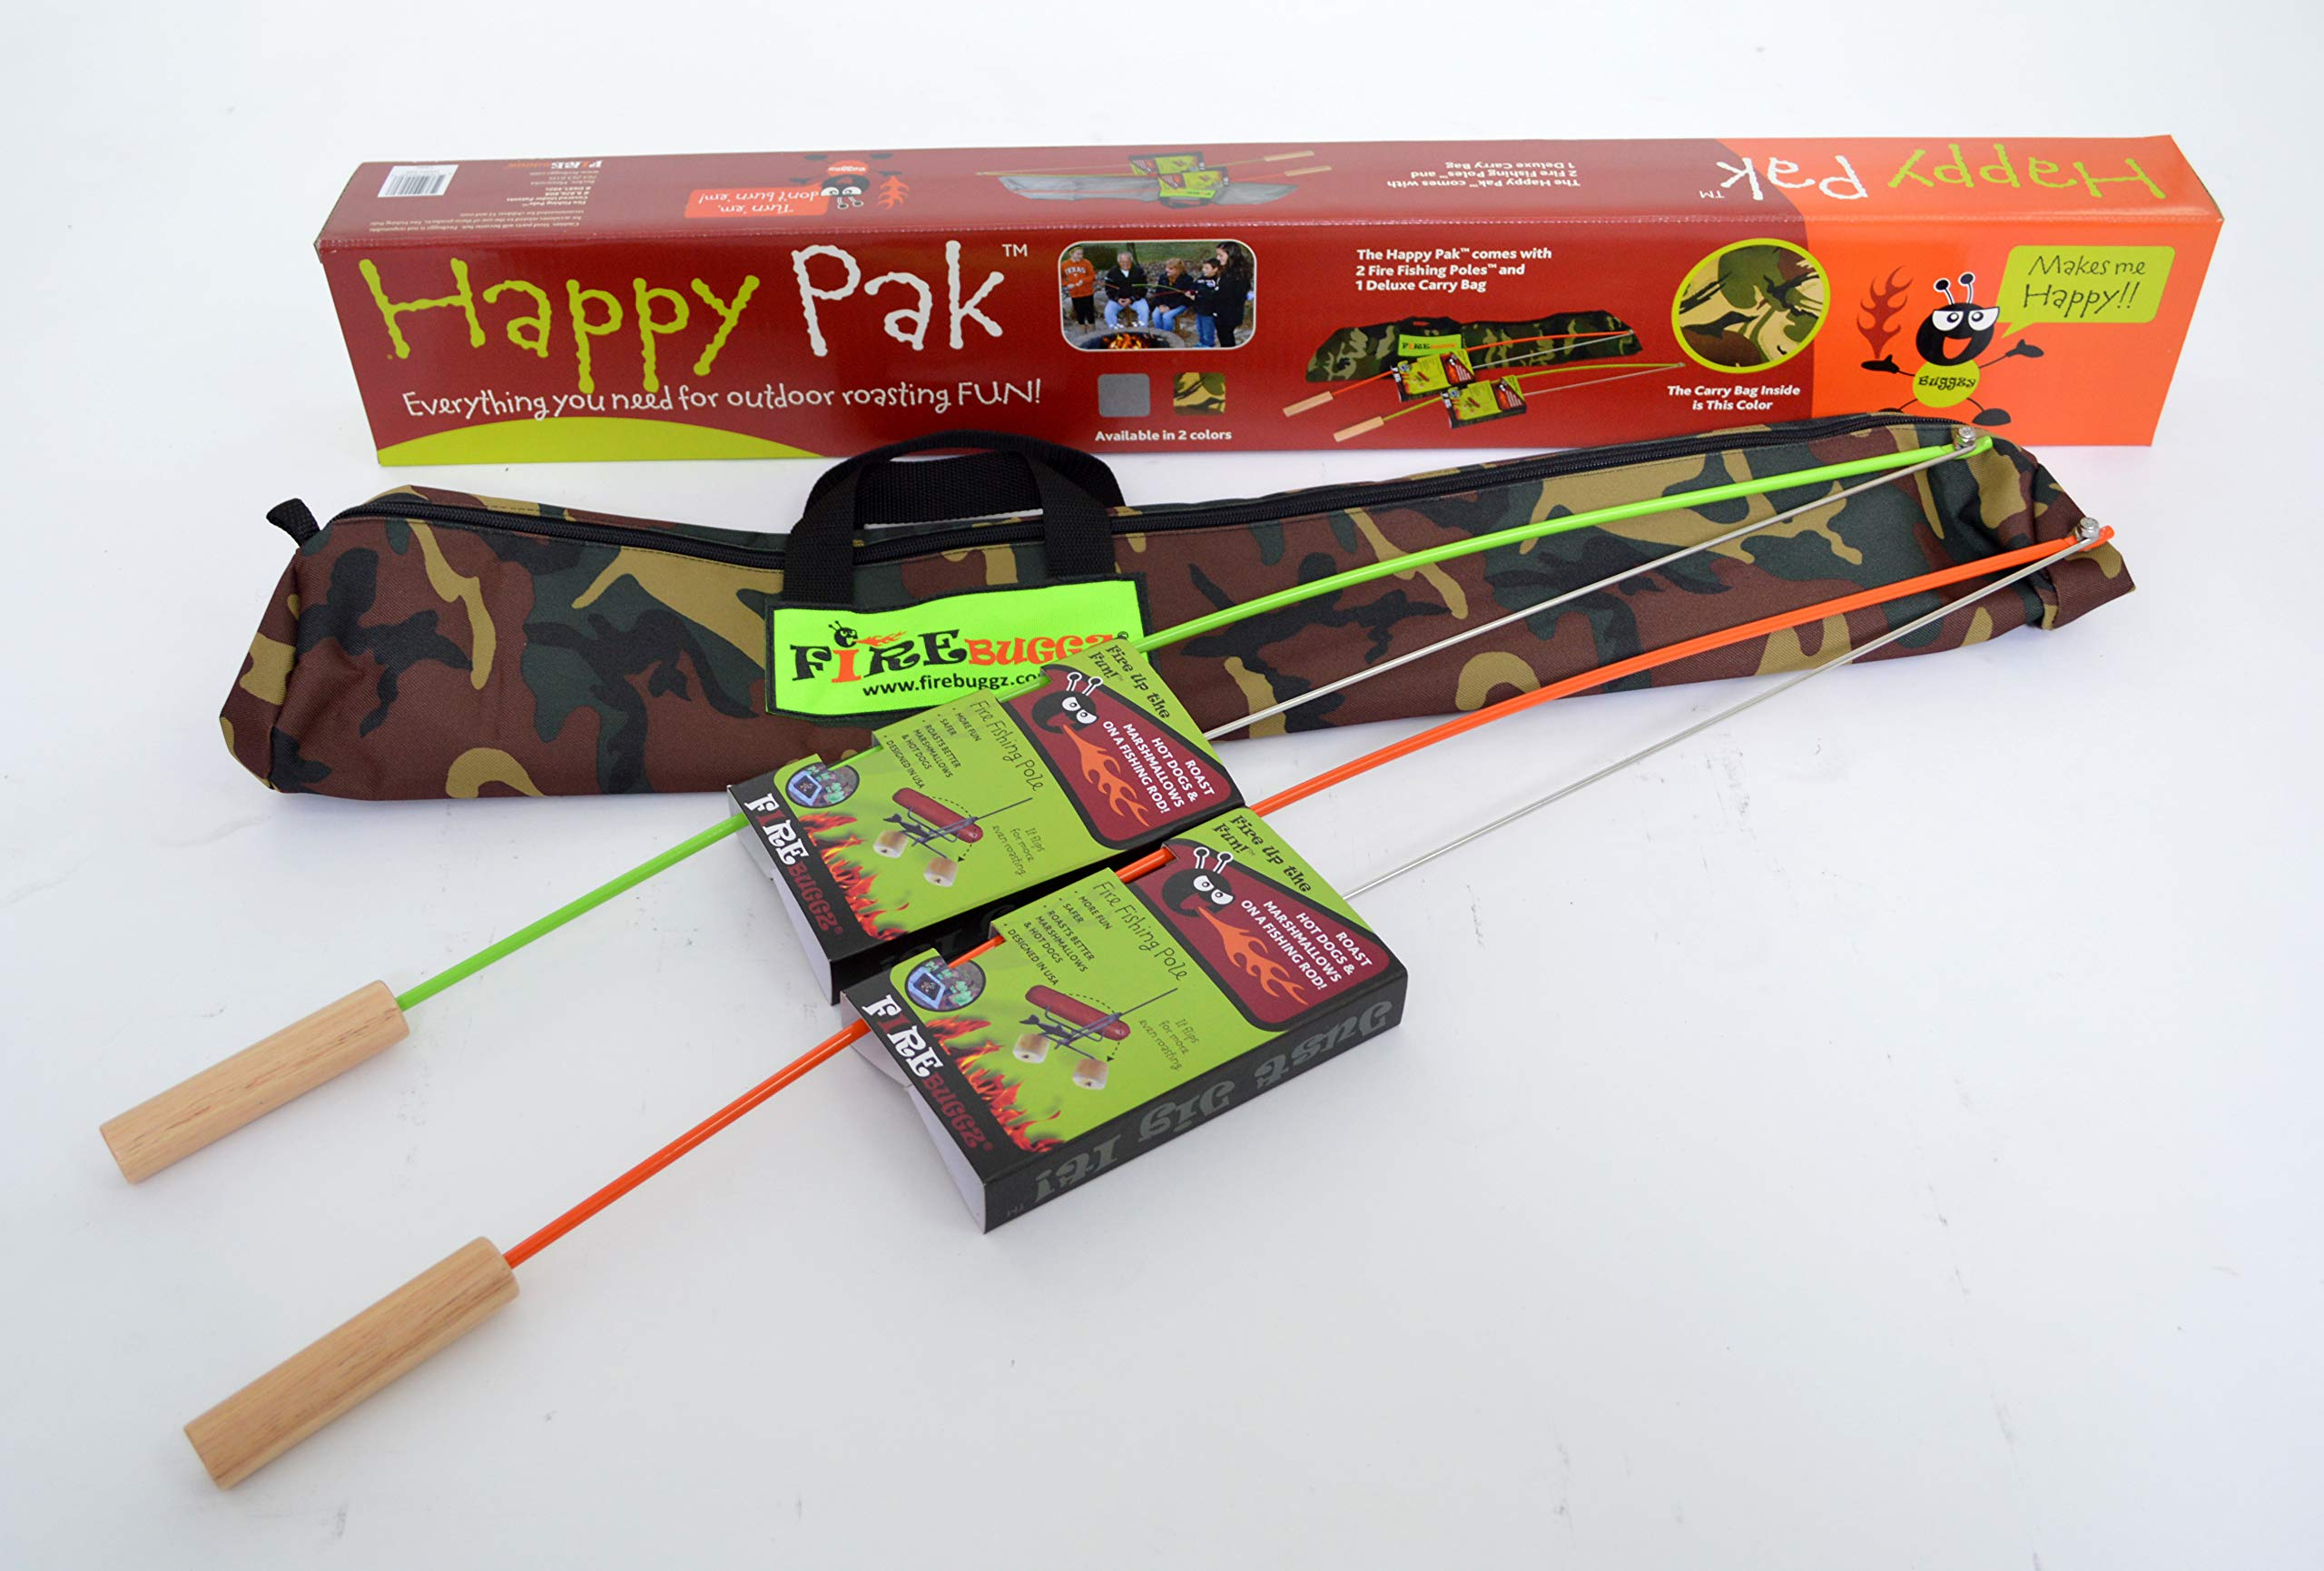 Happy Pak Marshmallow Roaster Sticks for cooking, roasting hotdogs at backyard patio campfire. Extending Family Fun camping outdoors by fire pit cooking with skewers and forks making Smores on a pole. by Firebuggz